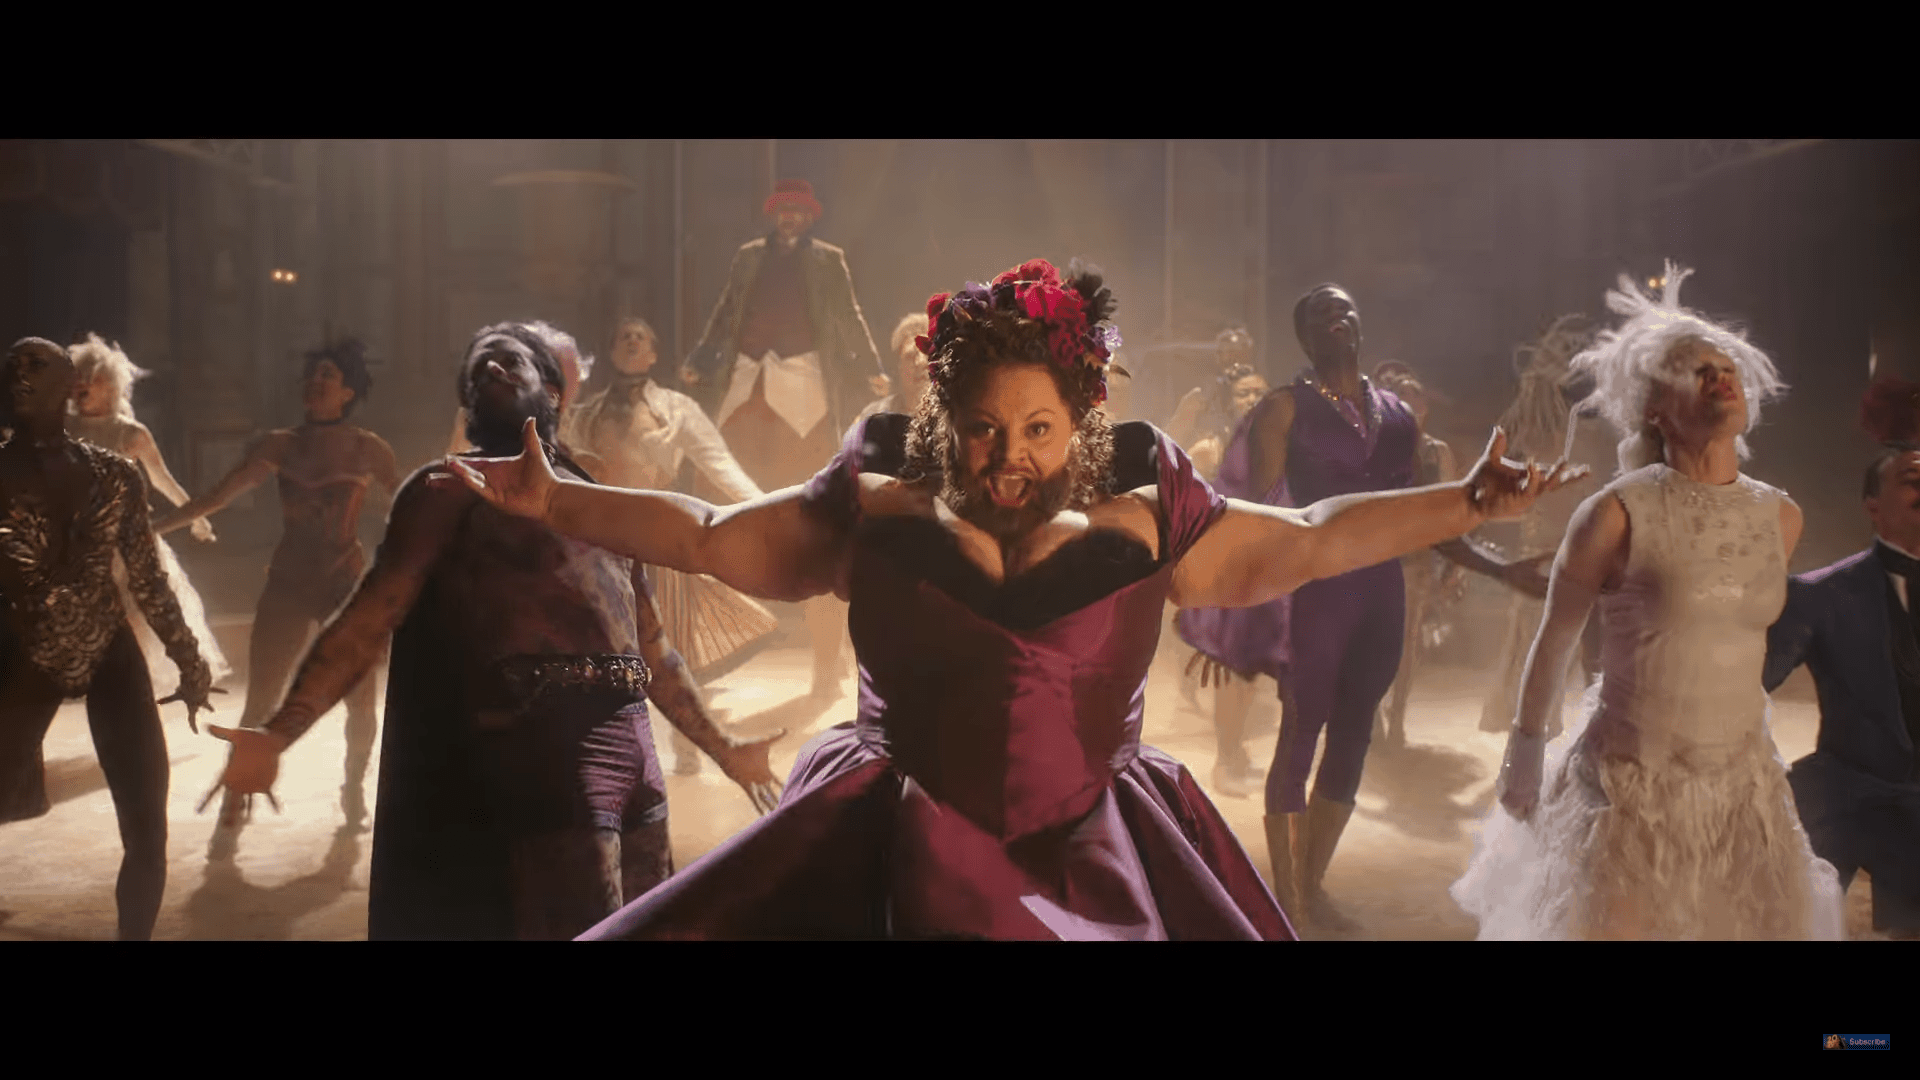 THE GREATEST SHOWMAN Trailer by 20th Century Fox